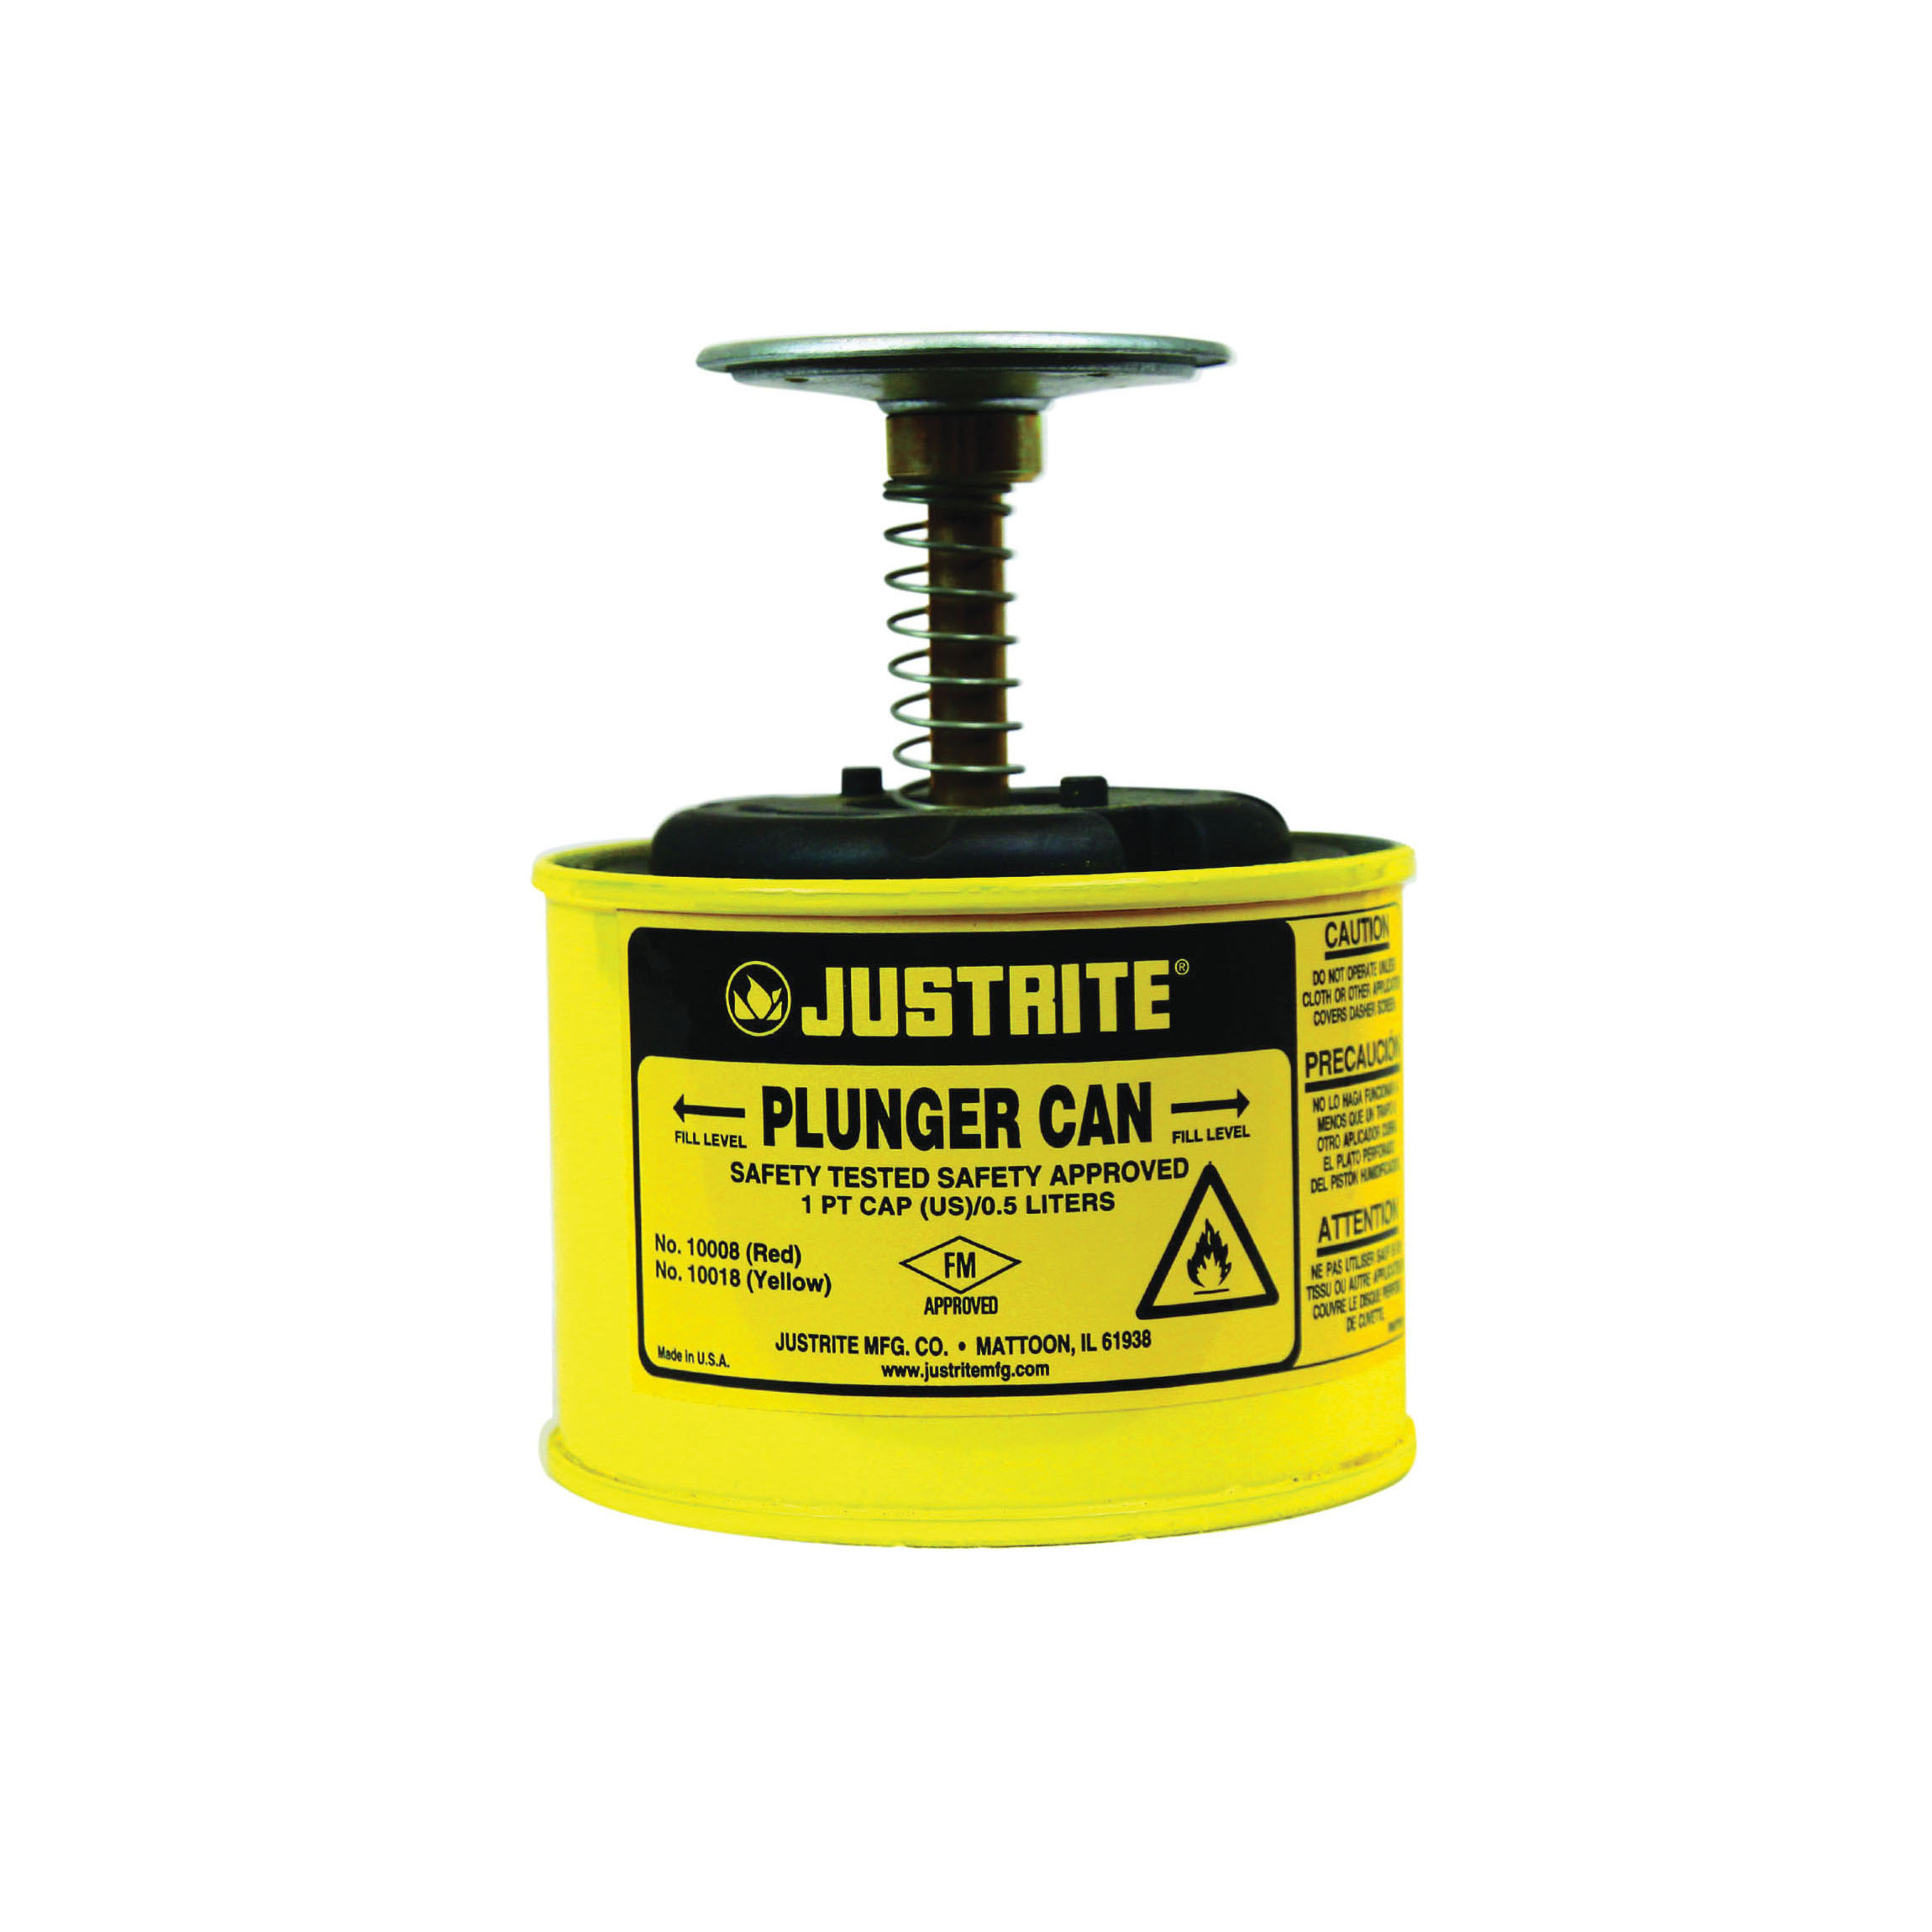 Justrite® 10018 Plunger Dispensing Can, 1 pt, Steel, Yellow, Brass/Ryton® Plunger, 2-3/4 in Dia Dasher Plate